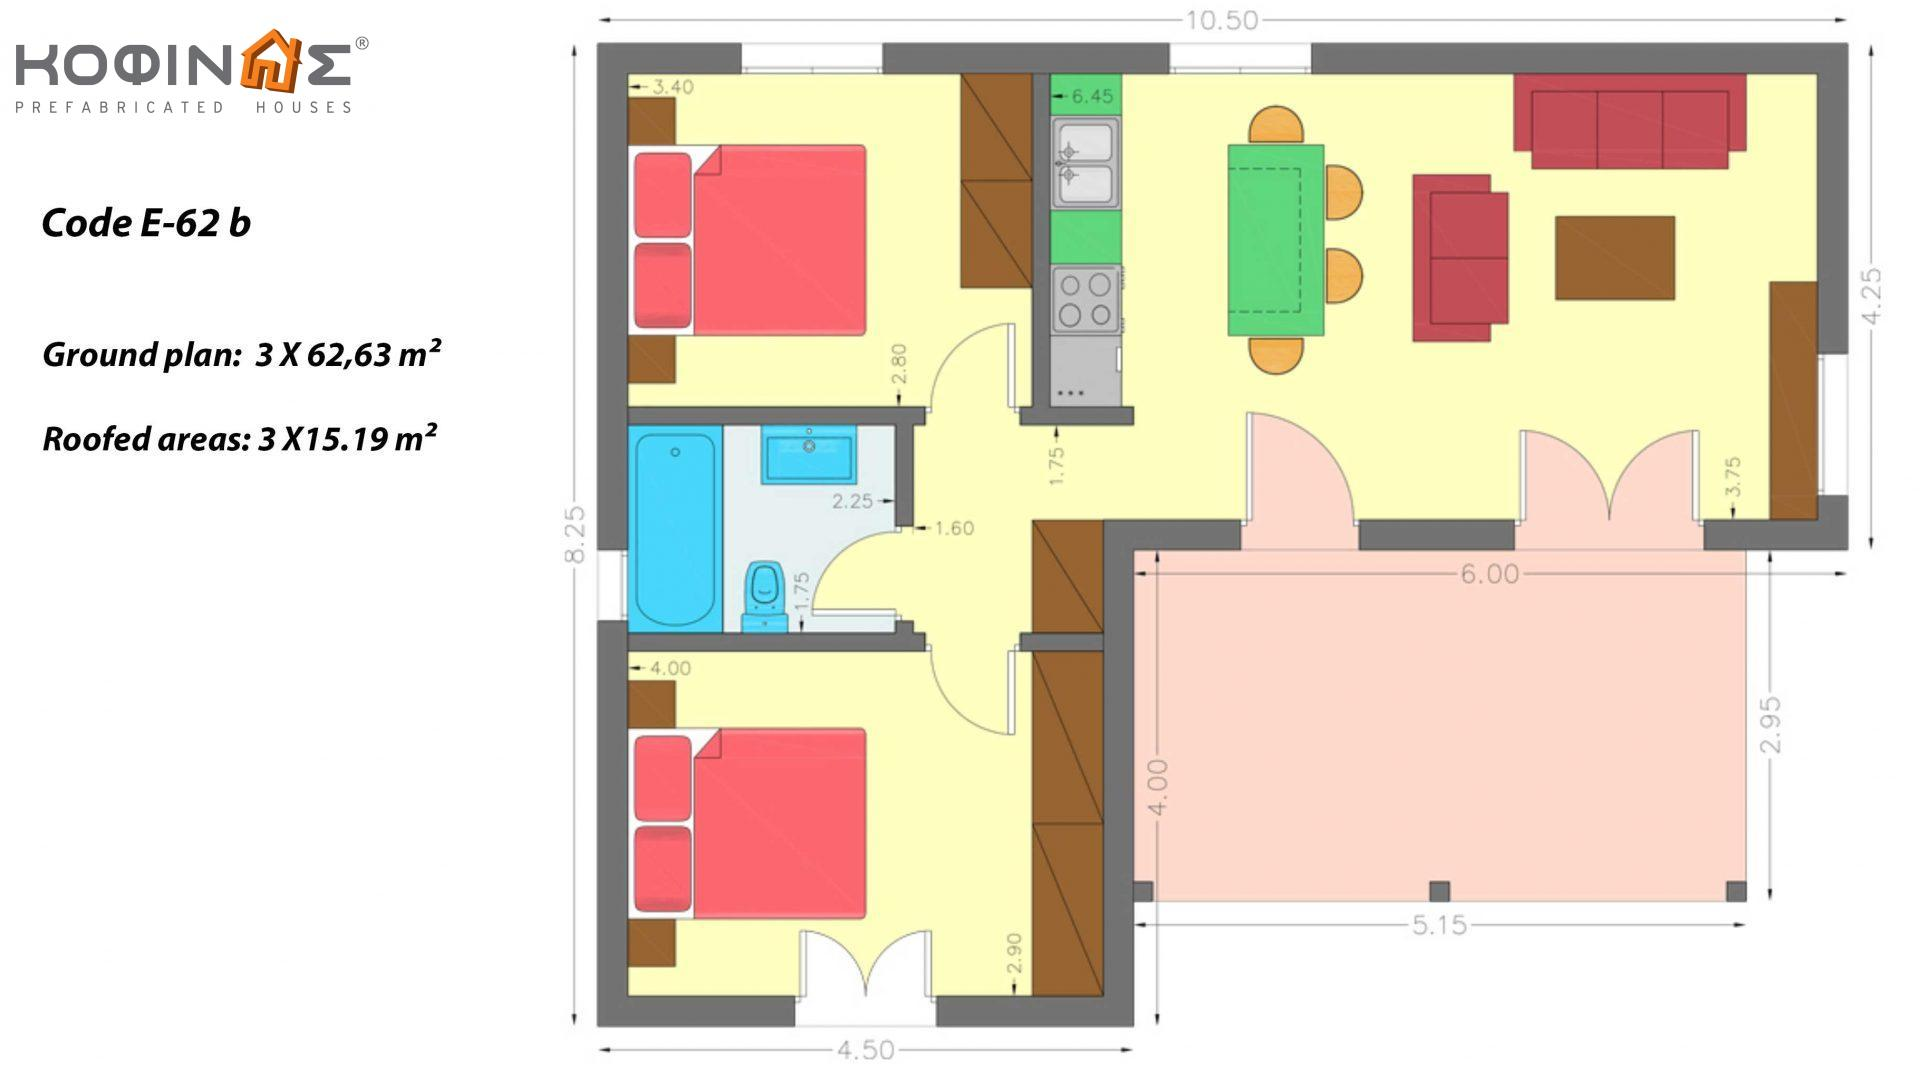 Complex of 1-story houses E-62b, total surface of 3 x 62,63 = 187,89 m², roofed areas 45.57 m²